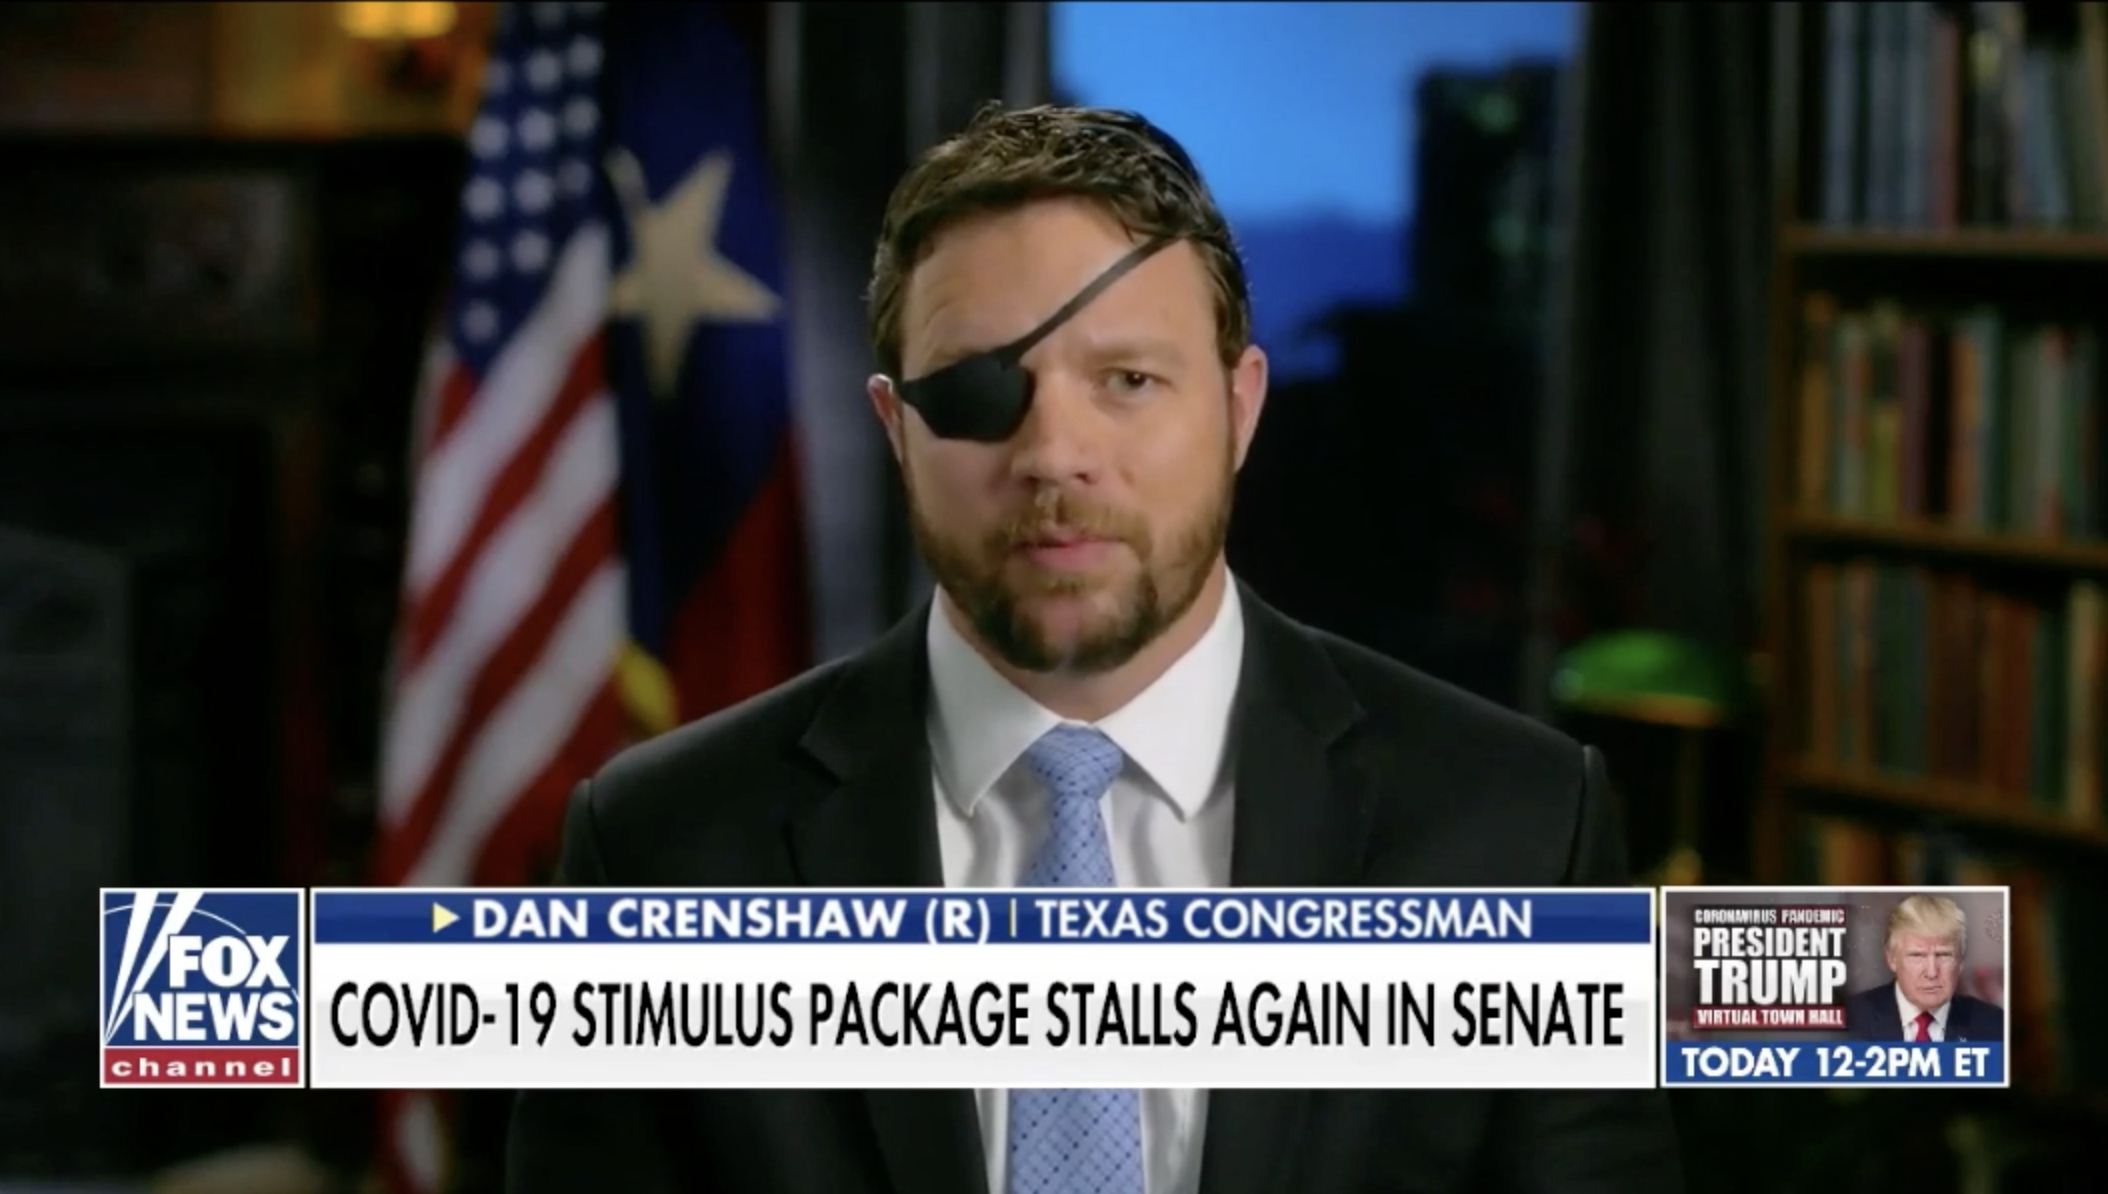 Dan Crenshaw Responds to Democrats Blocking Stimulus Package